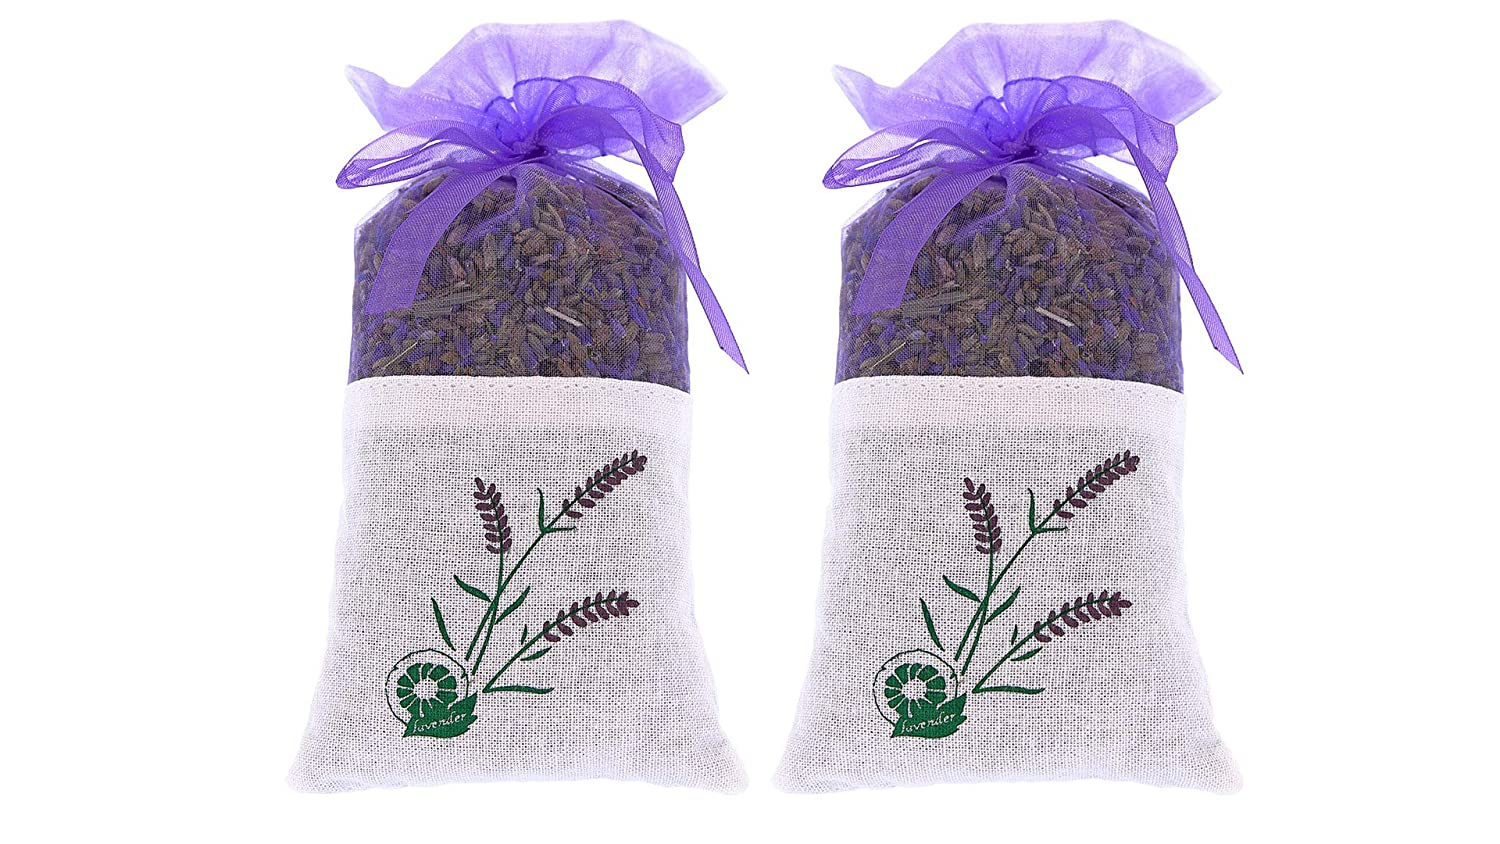 2 bags of 100% Pure Dried Lavender Buds for Closet and Drawers – Natural Air Freshener for room and car – moth and insect repellent – Lavender Aromatherapy The Ambient Collection AC01003